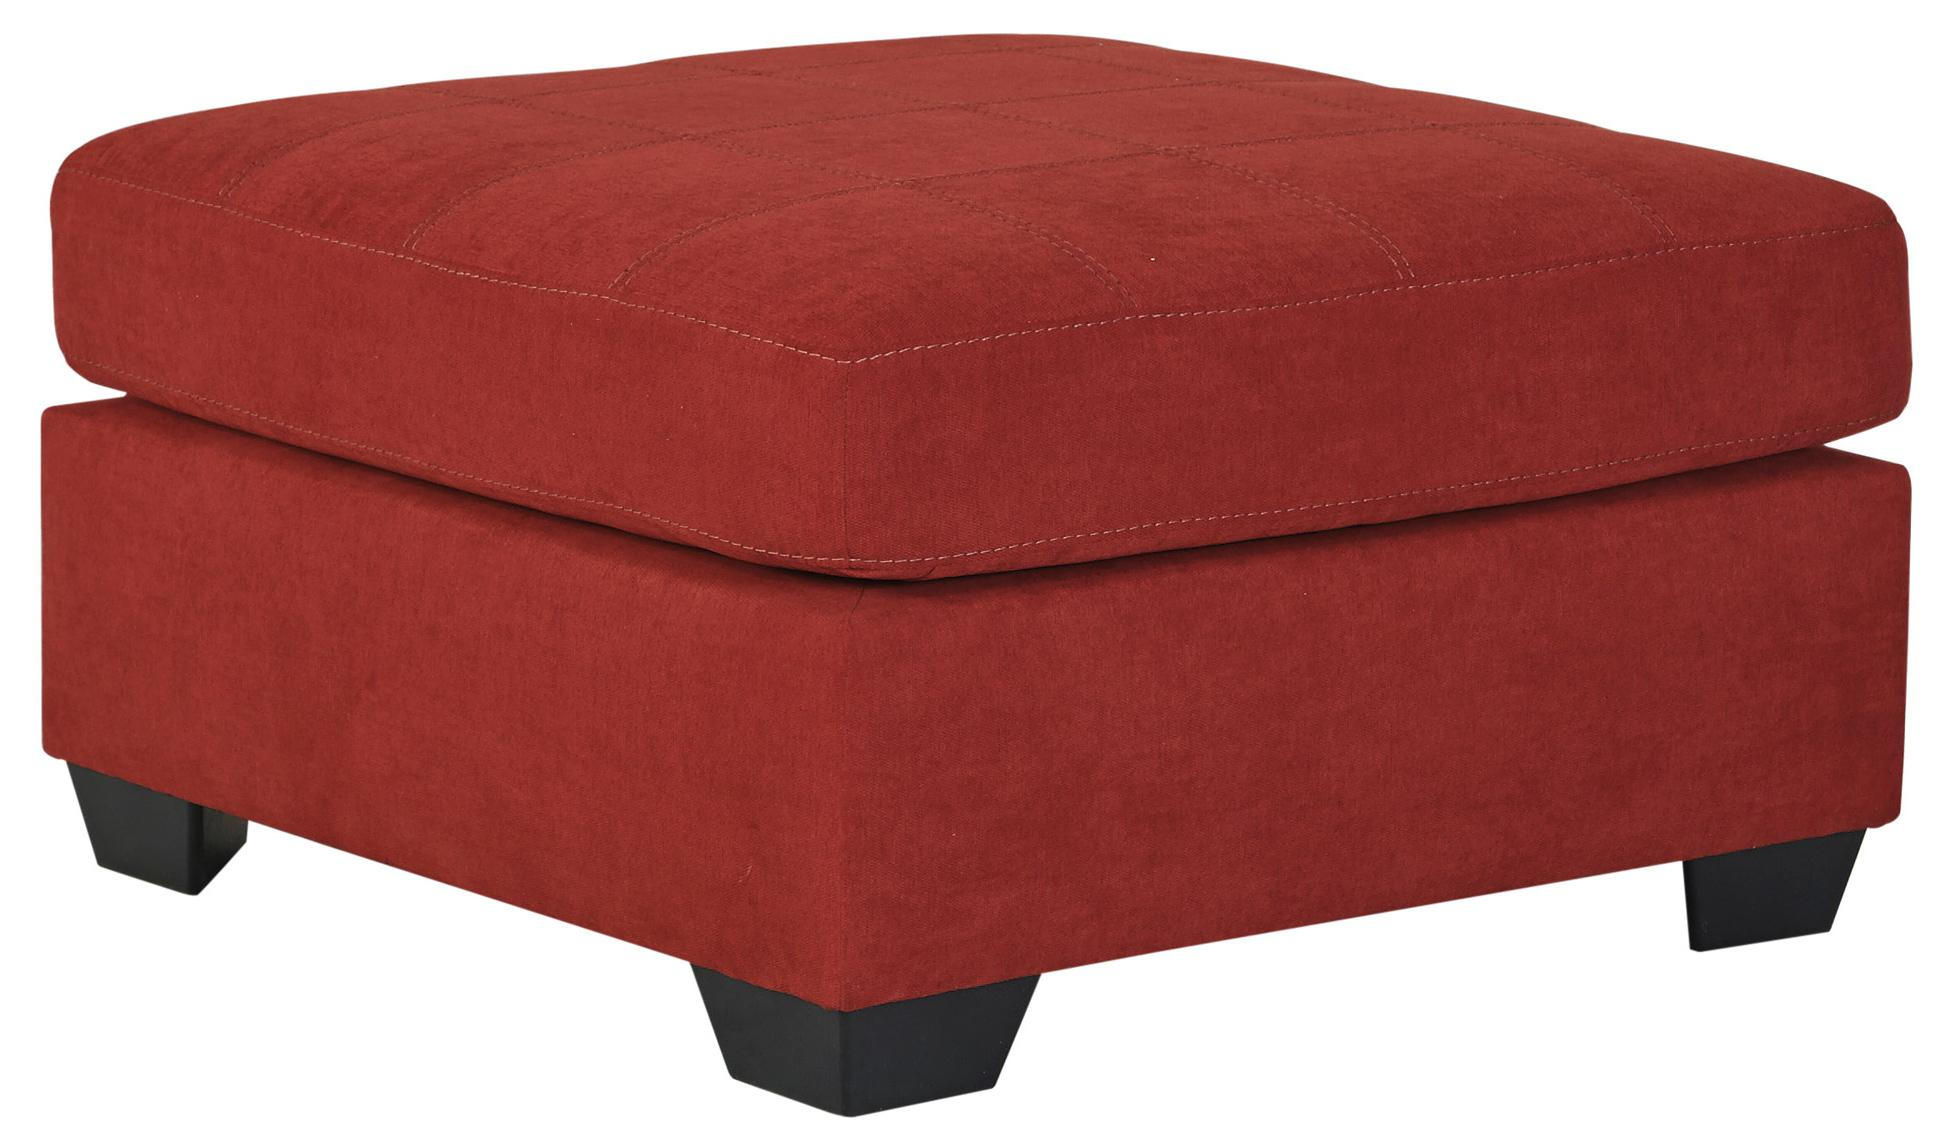 Benchcraft Maier - Sienna Oversized Accent Ottoman - Item Number: 4520208